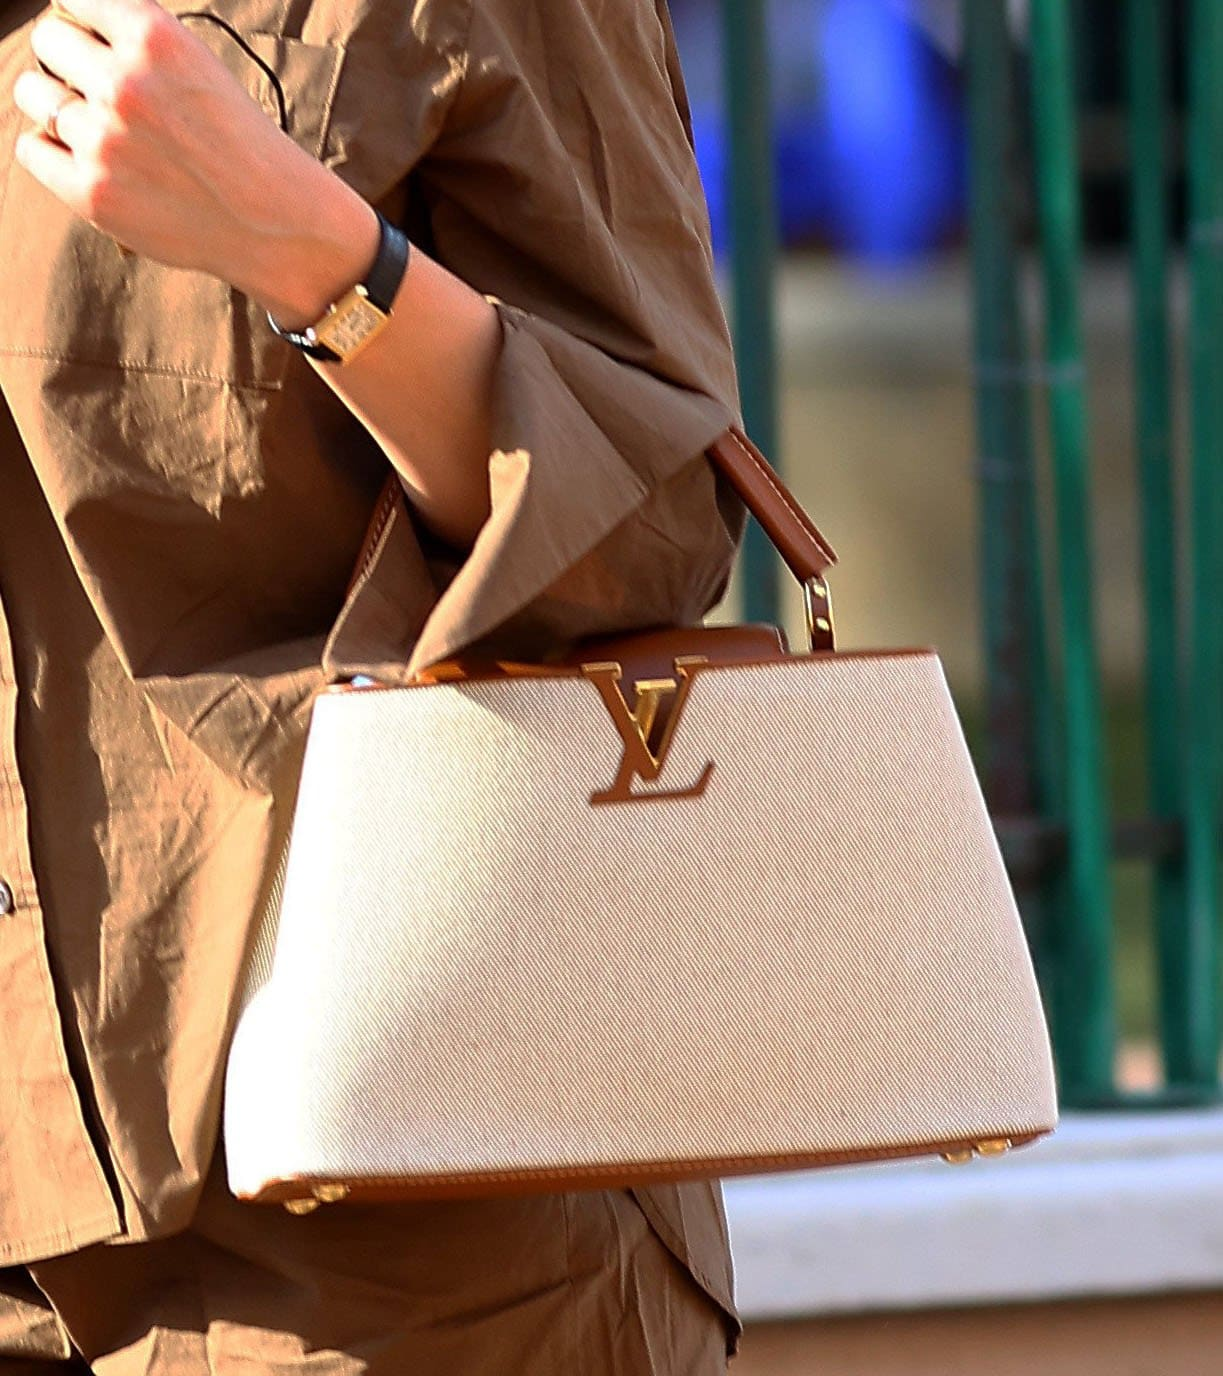 Karlie Kloss carries her stuff in a Louis Vuitton Capucines MM canvas bag